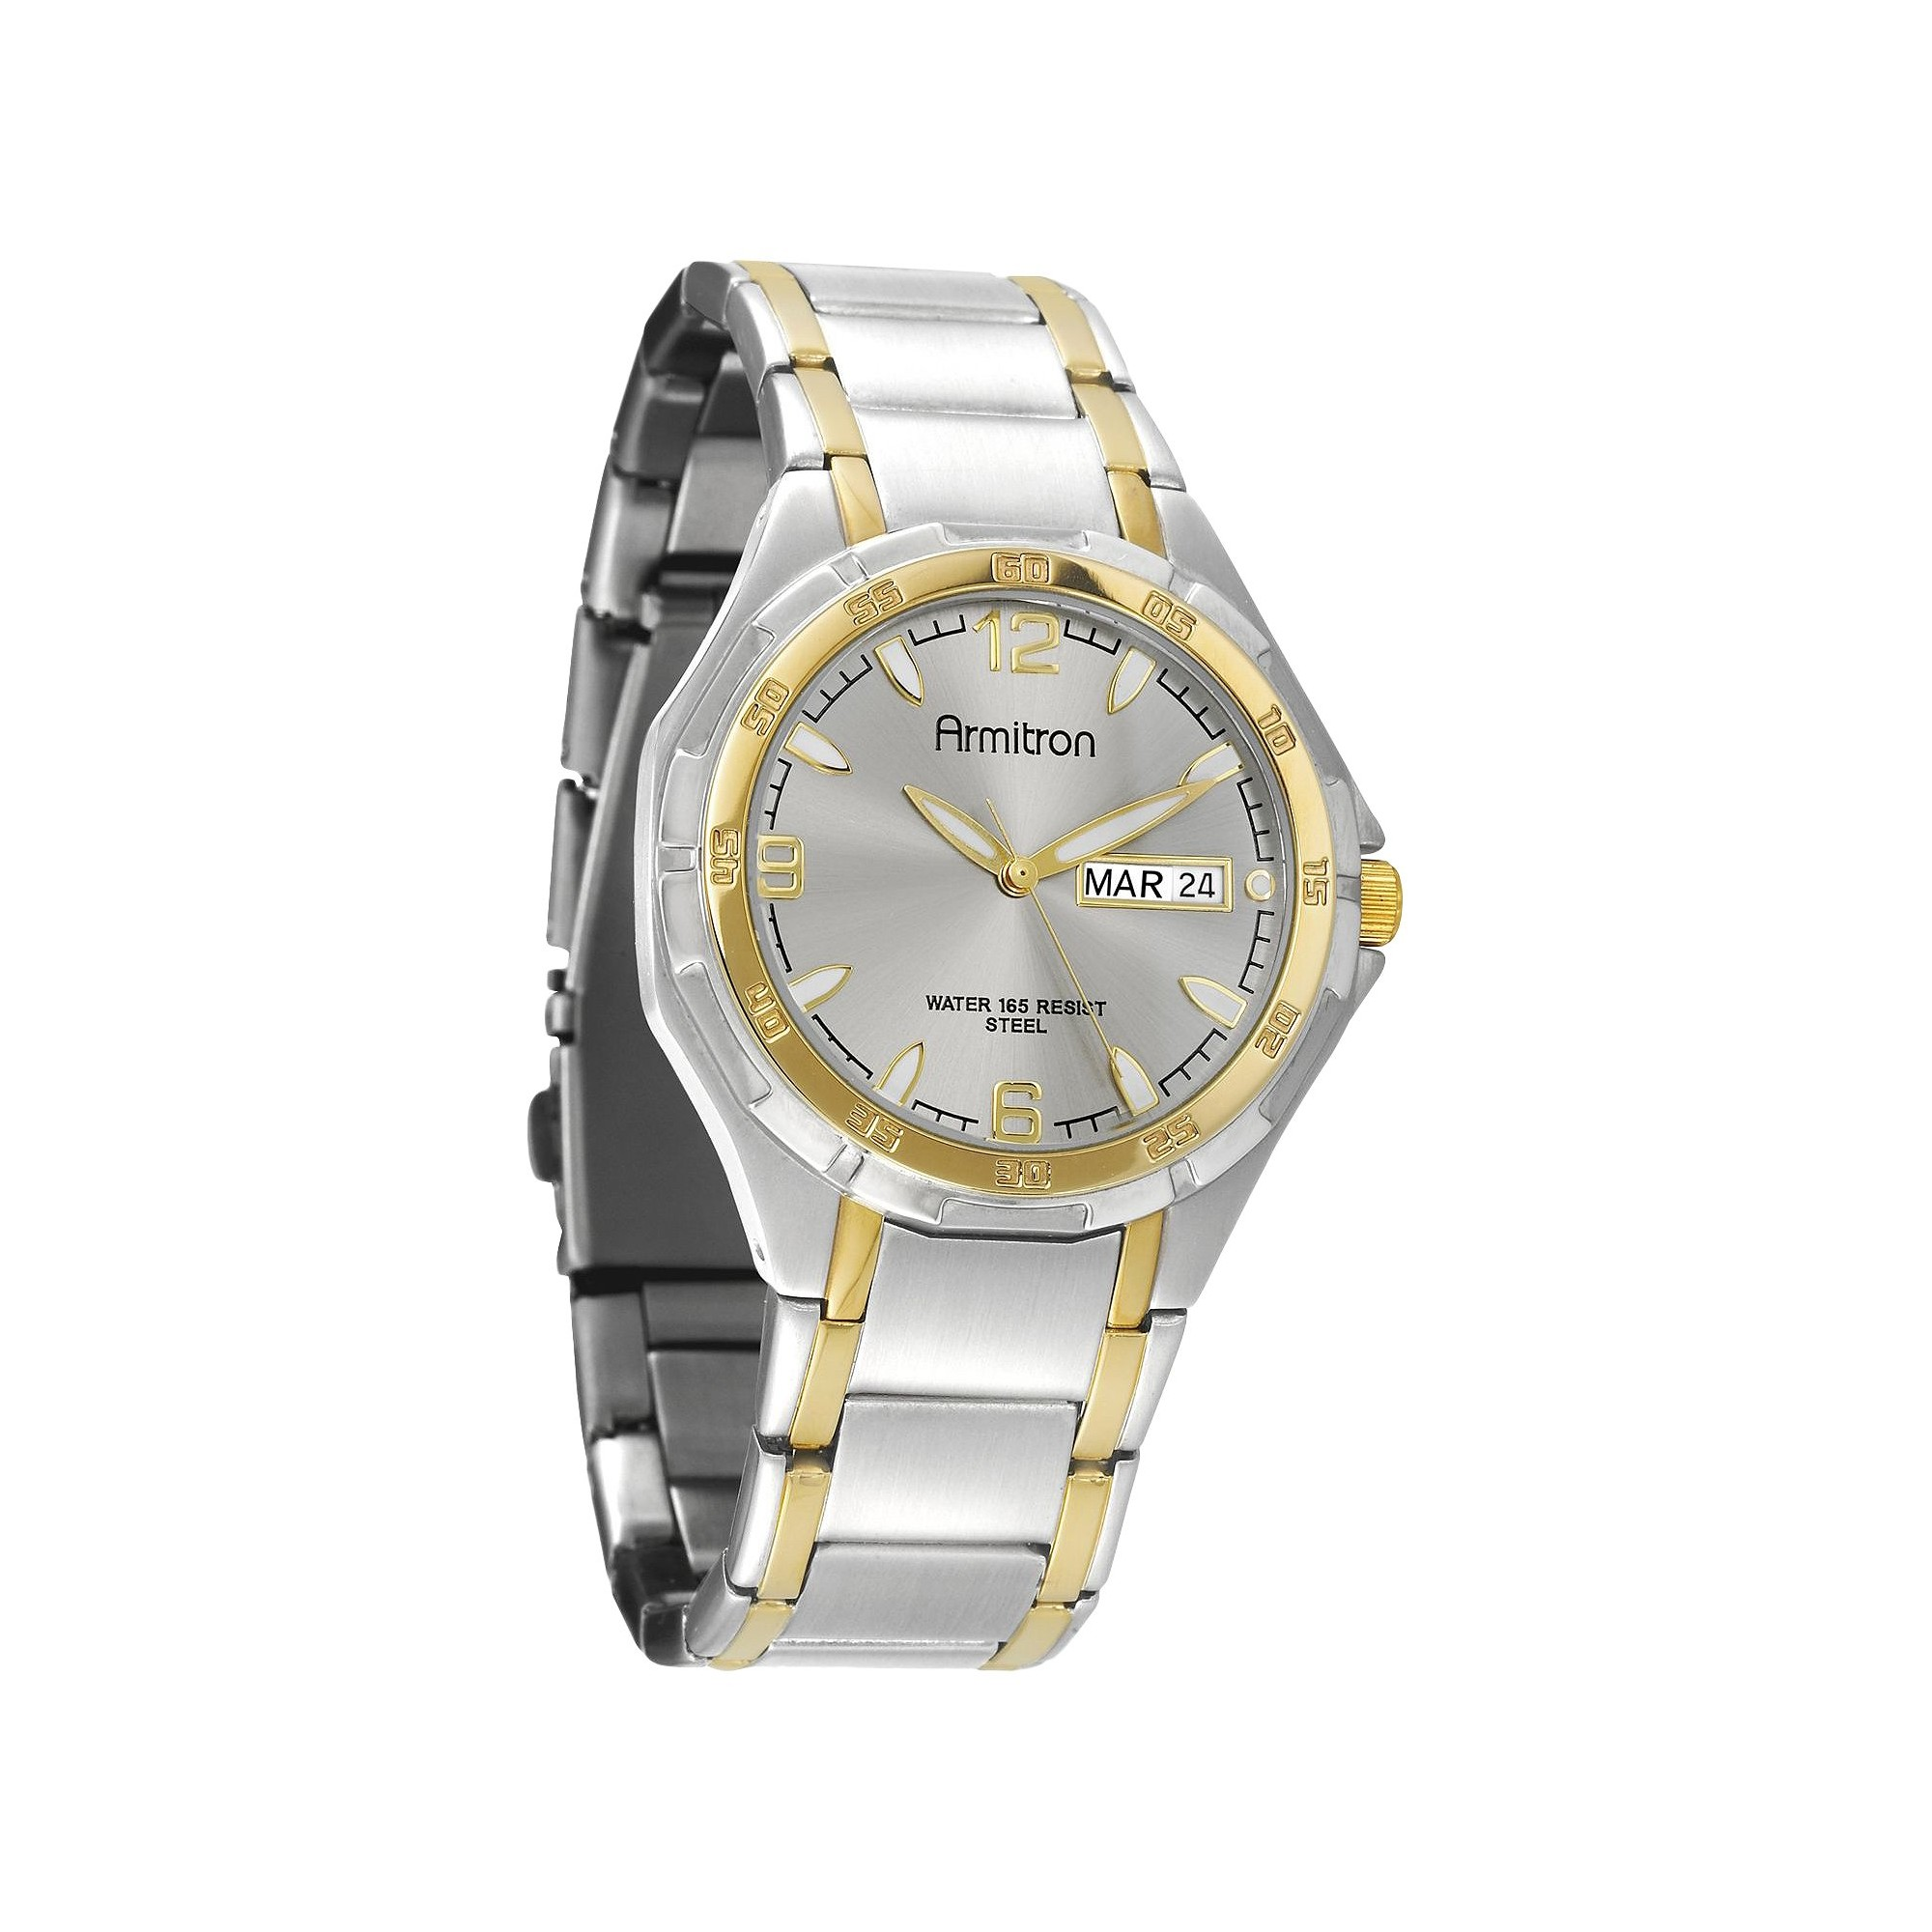 Armitron Men's Two-Tone Round Dial Dress Watch, Size: Small, Gold Silver